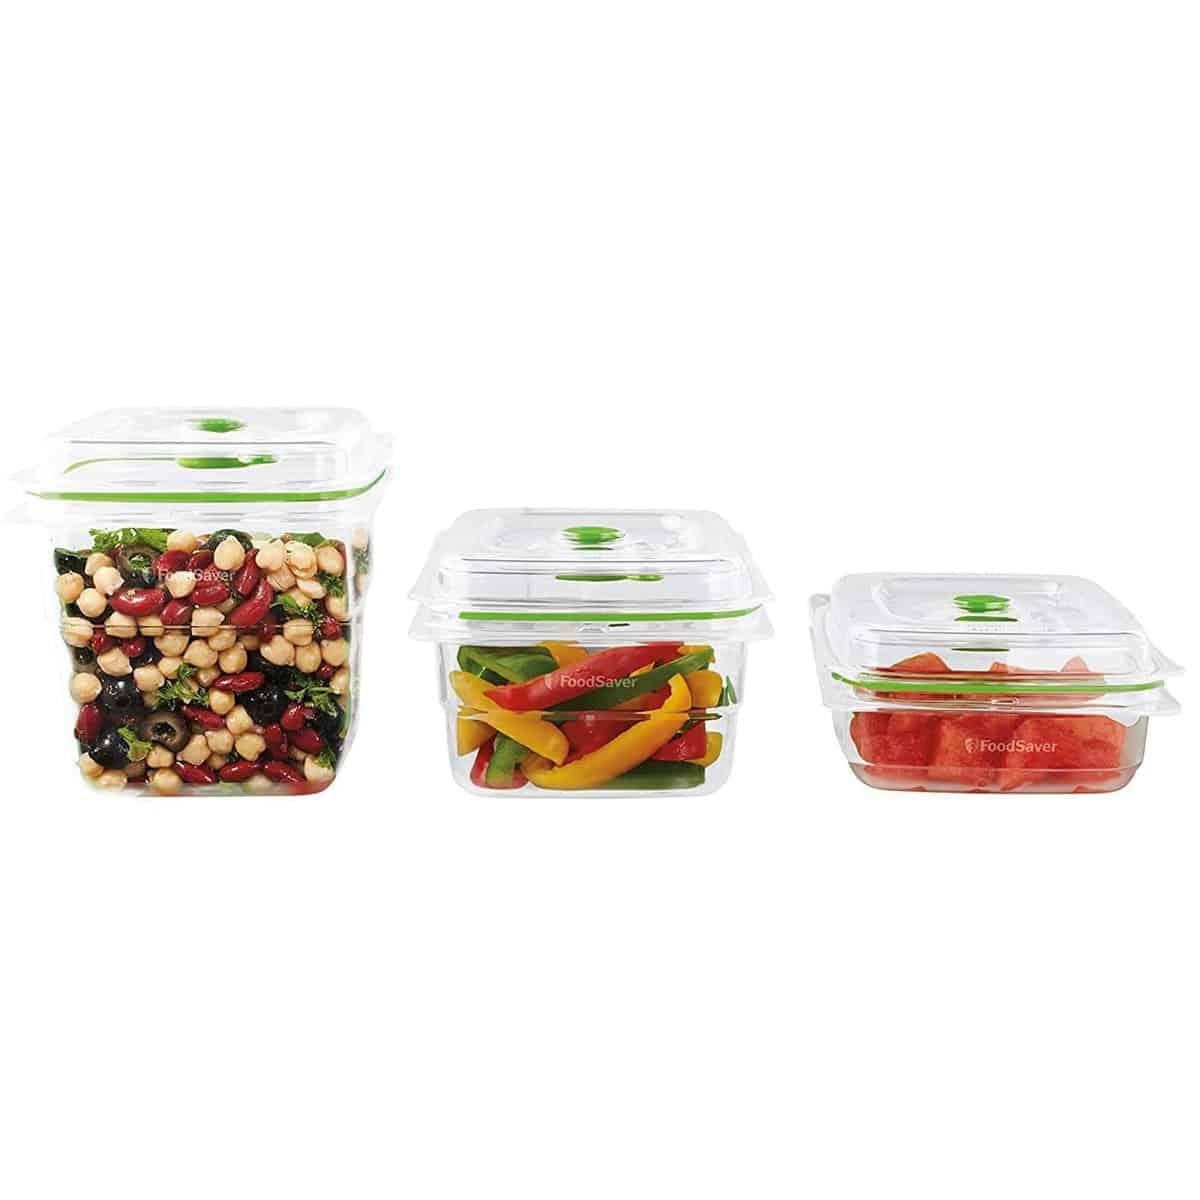 Foodsaver Fresh Food Container 3 Pack Stuff For The